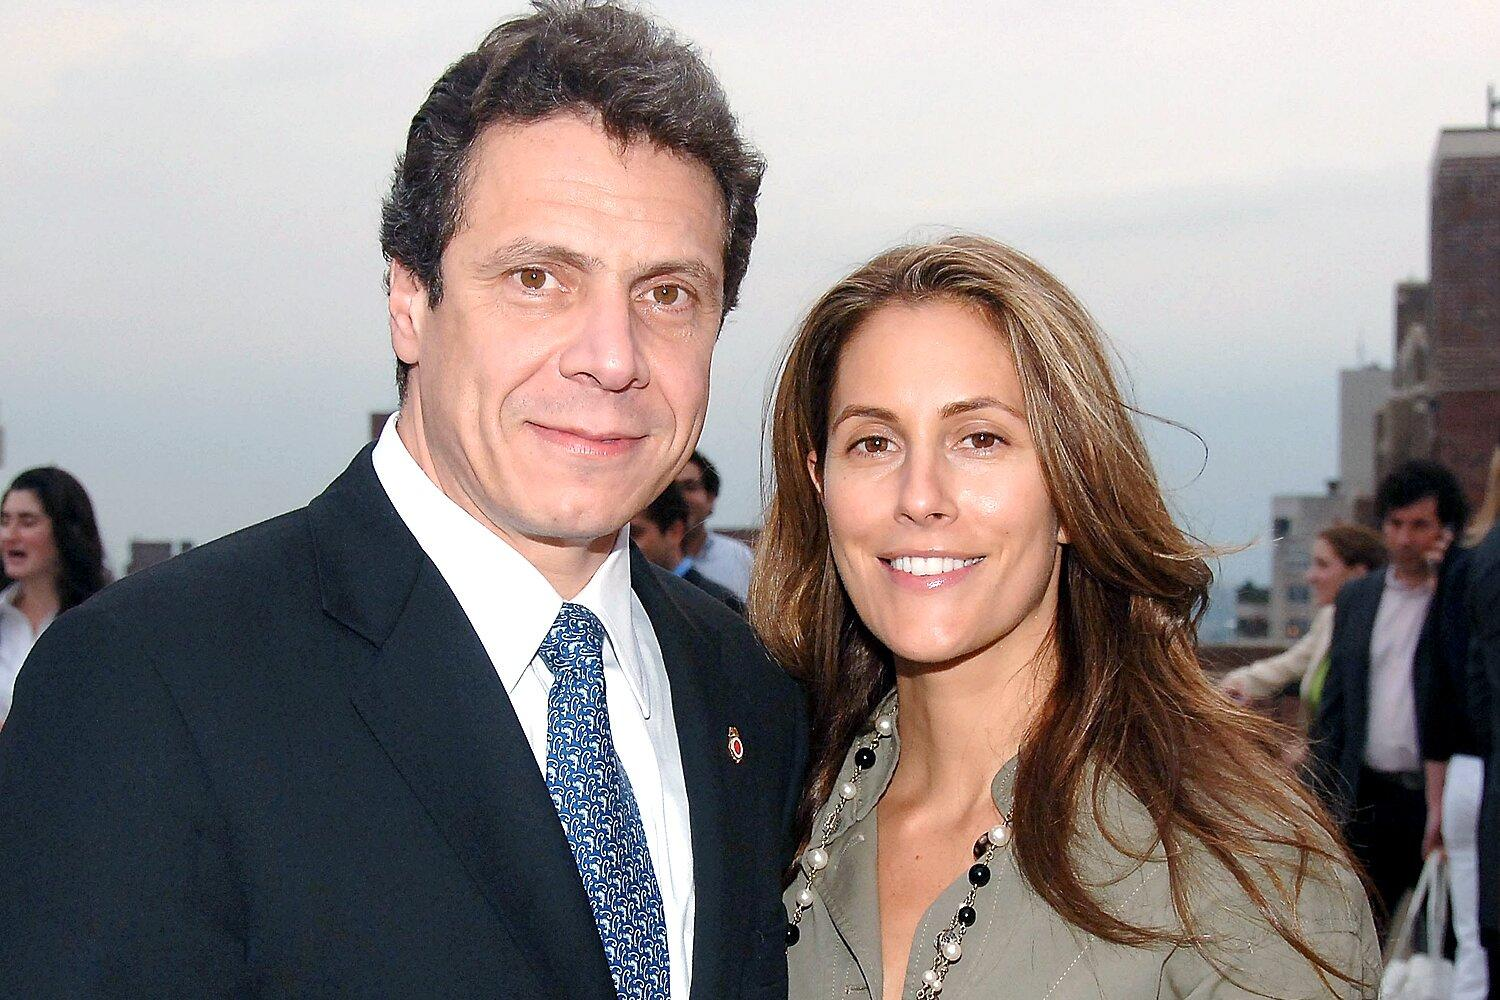 New York Governor Andrew Cuomo Knows He S Eligible In 2020 Andrew Cuomo Chris Cuomo Andrew